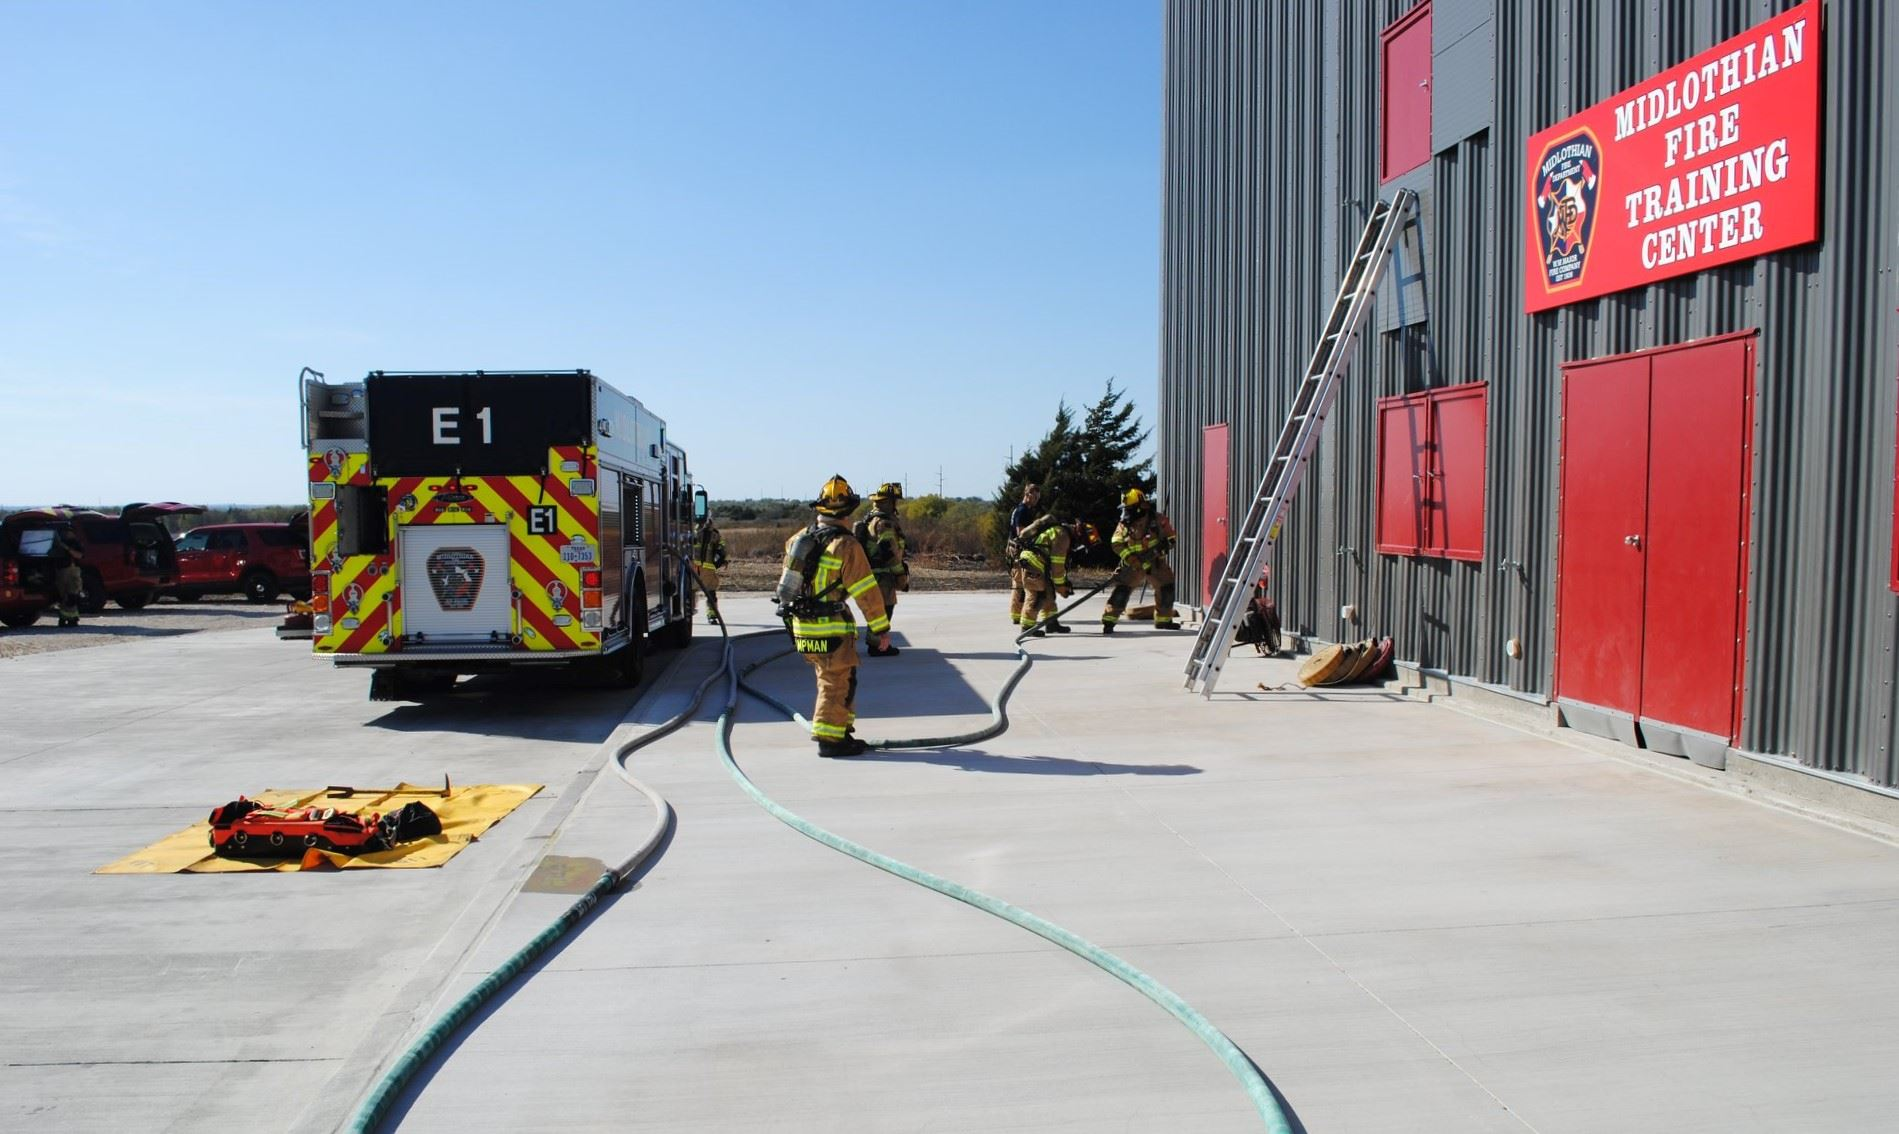 Midlothian Fire Training Center - Engine 1 and Firefighters training with hose/ladder